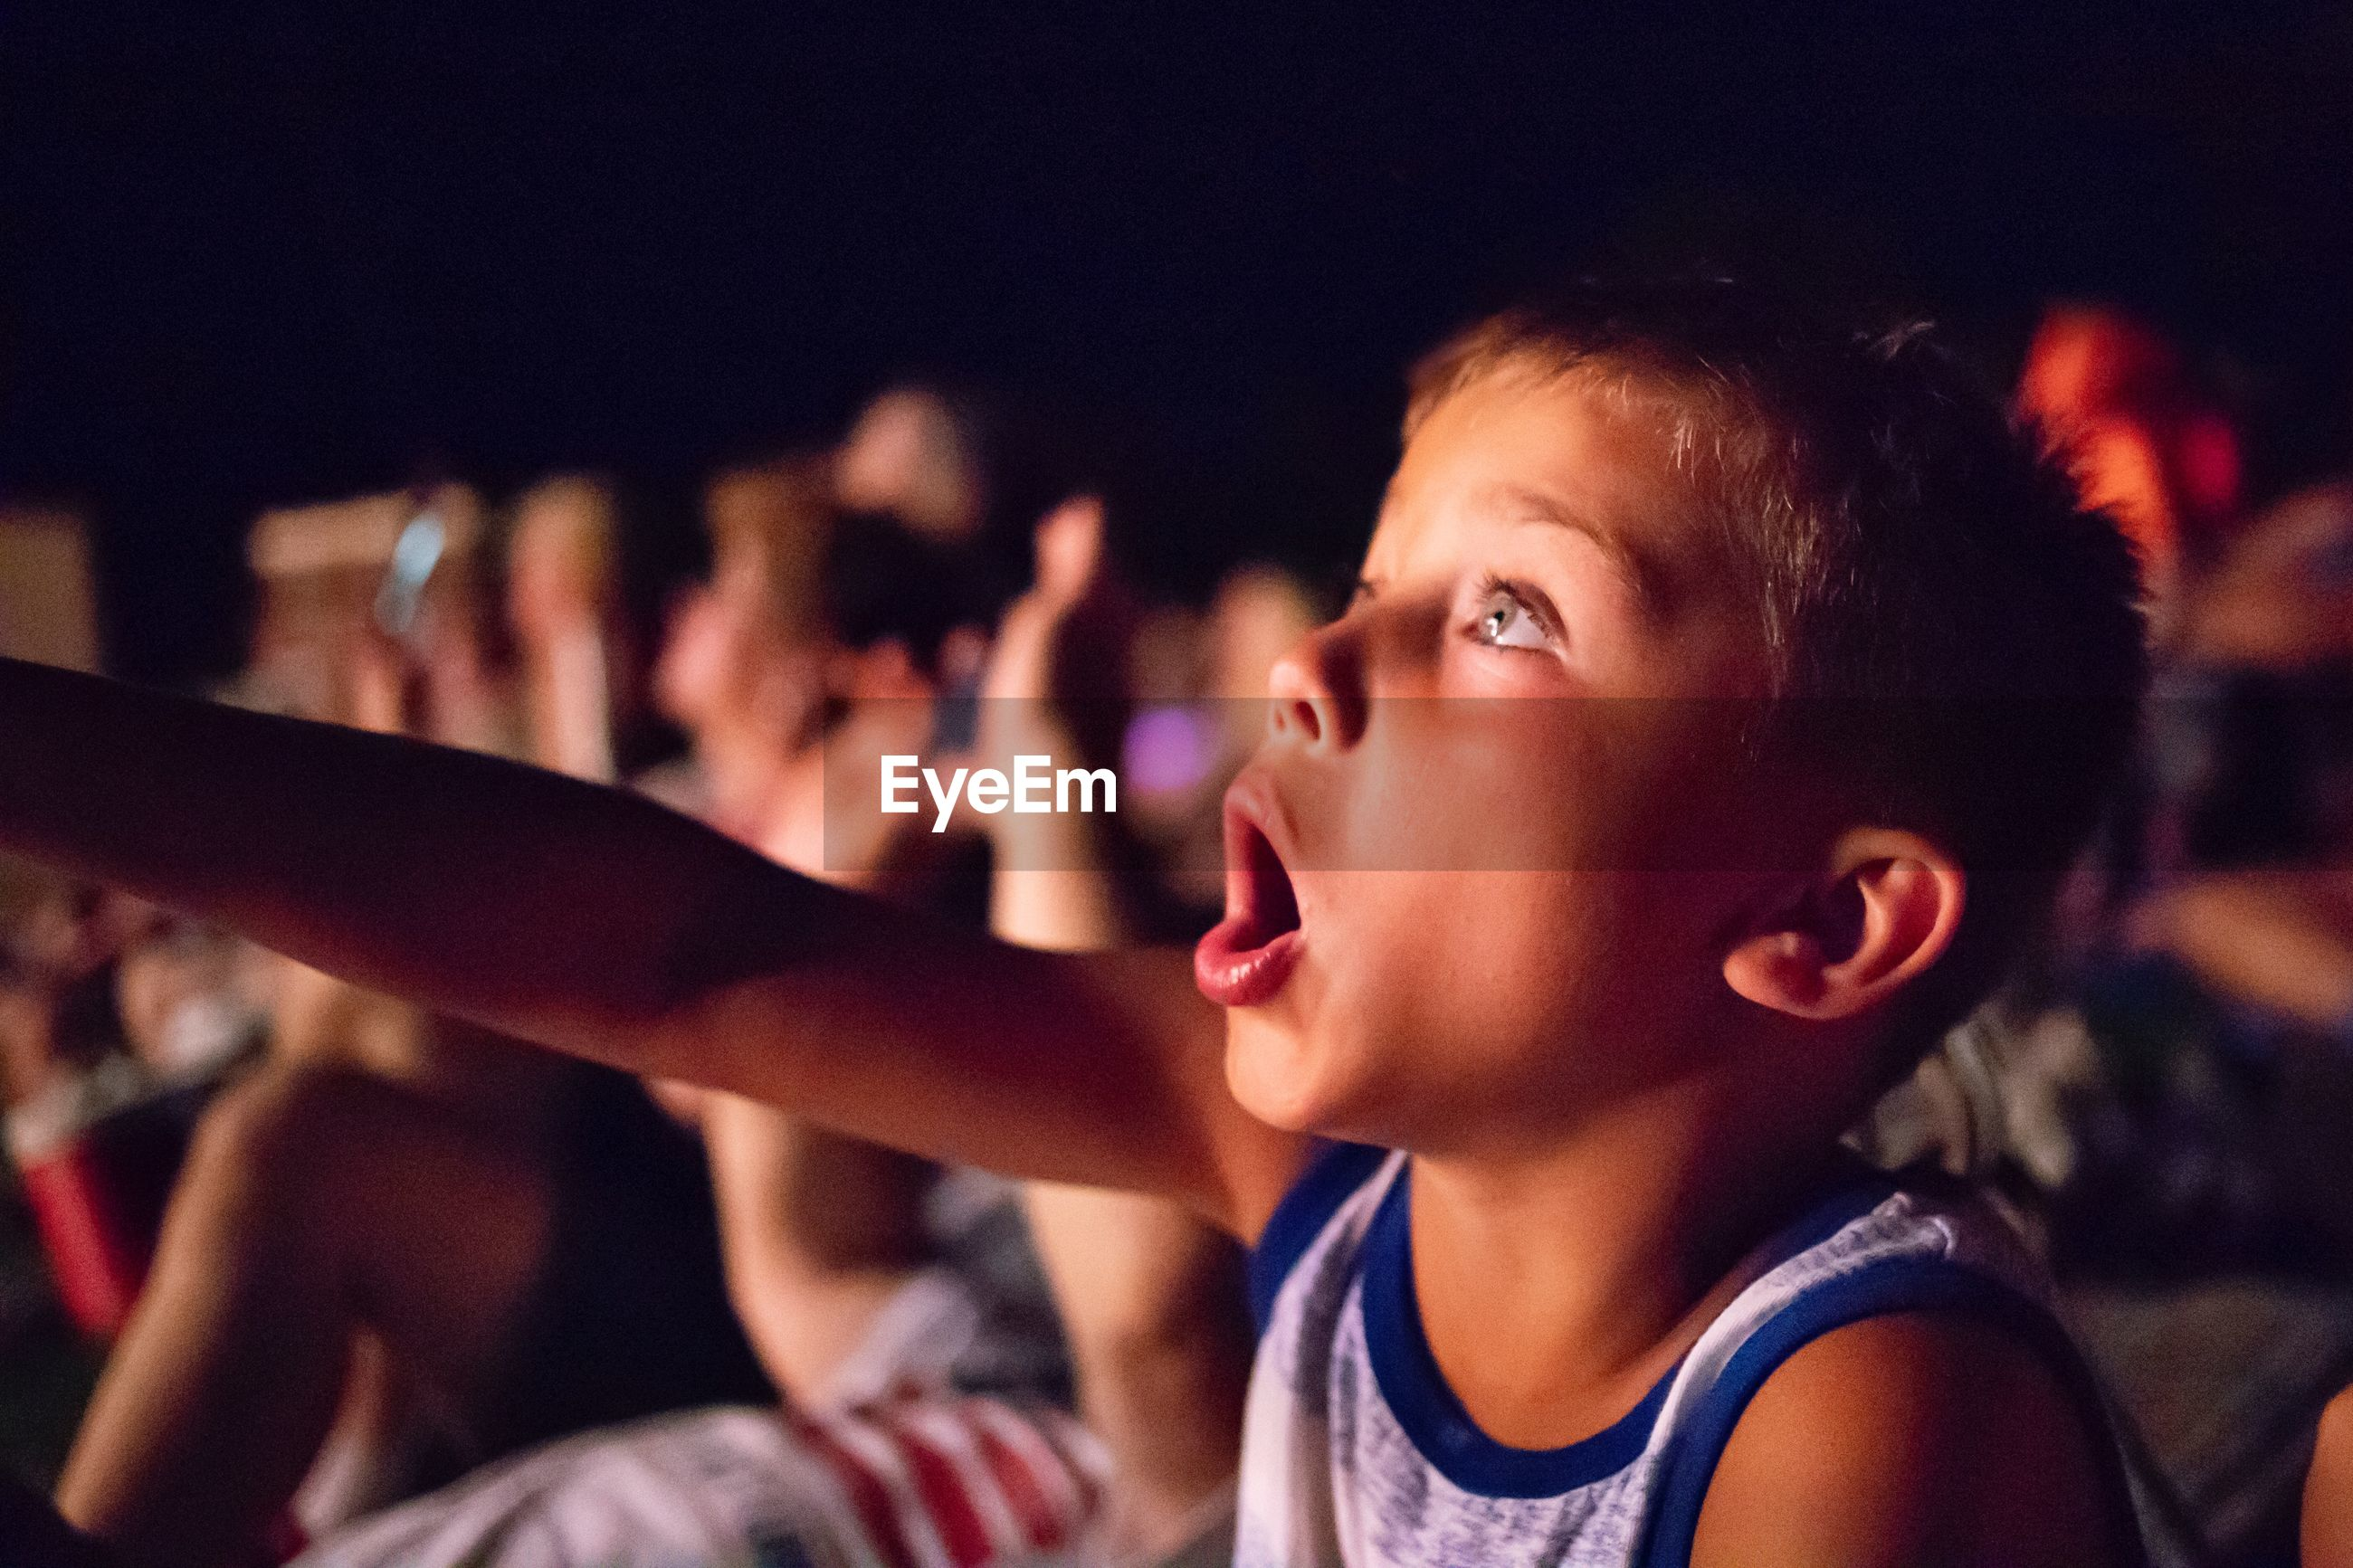 Boy watching movie in theater